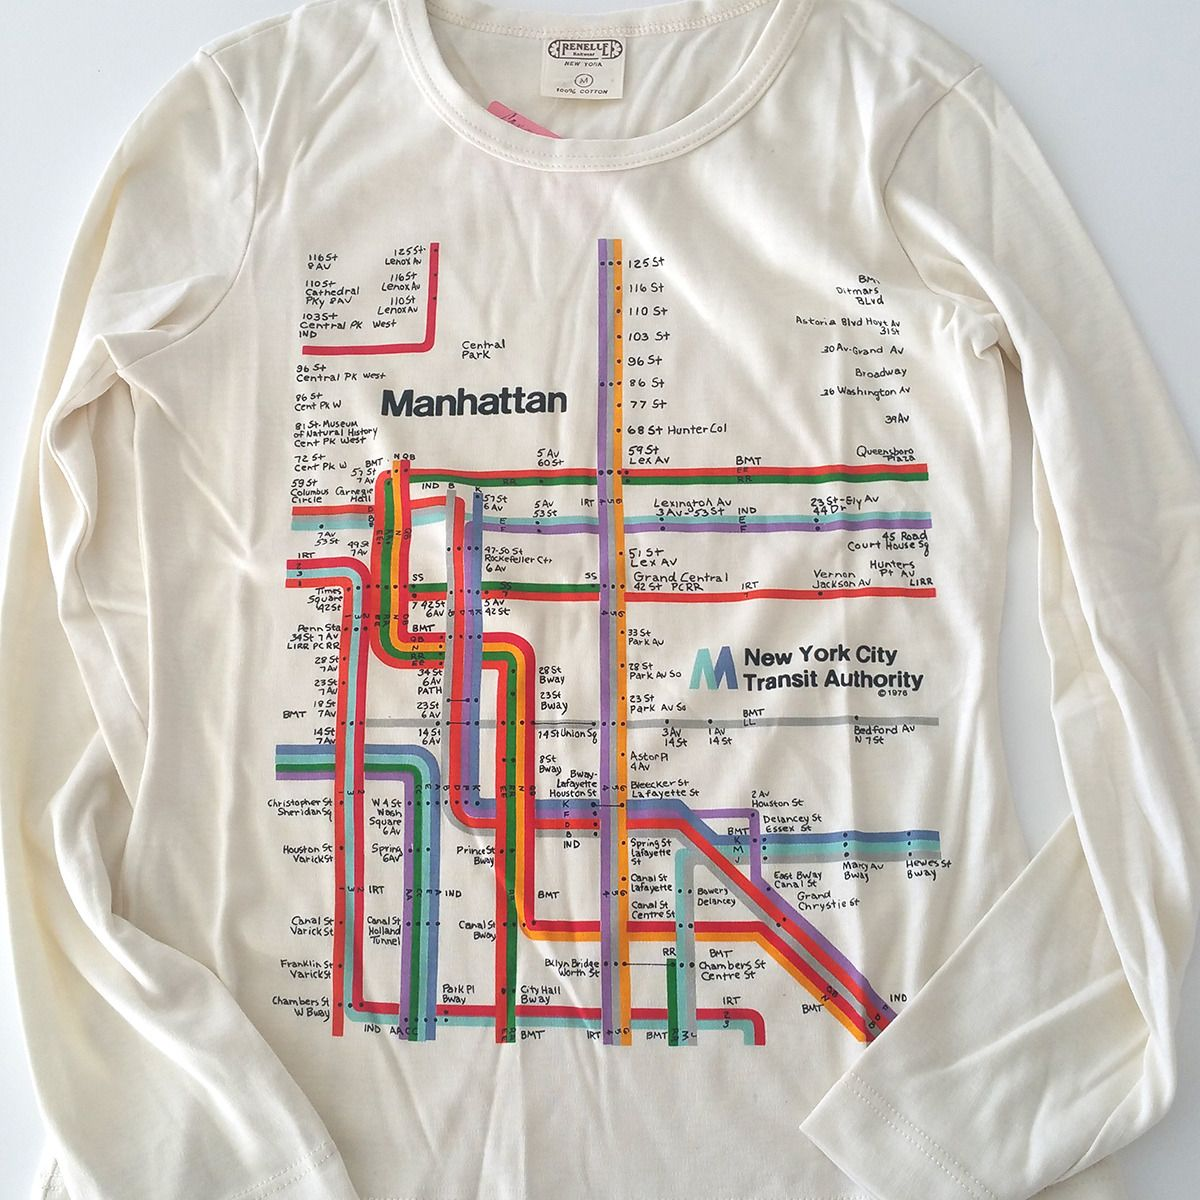 Nyc Subway Map T Shirt.Friday Archives Fun T Shirt Variety Pack Today We Opened A Box In